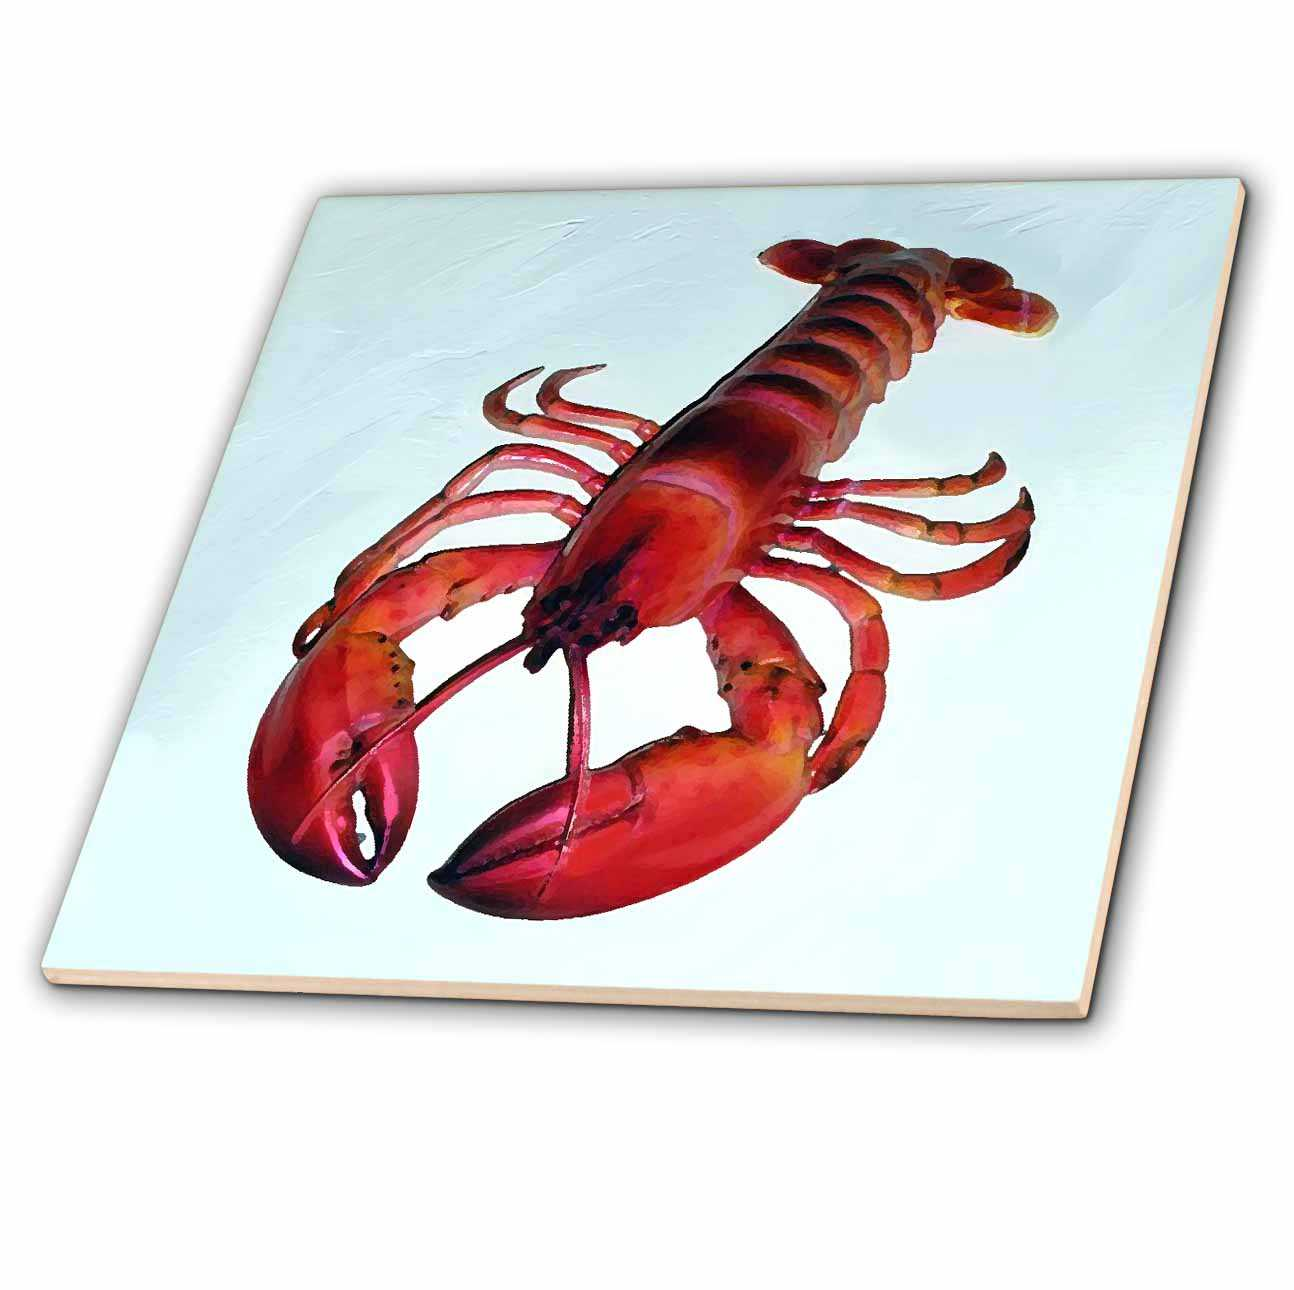 3dRose Lobster - Ceramic Tile, 12-inch